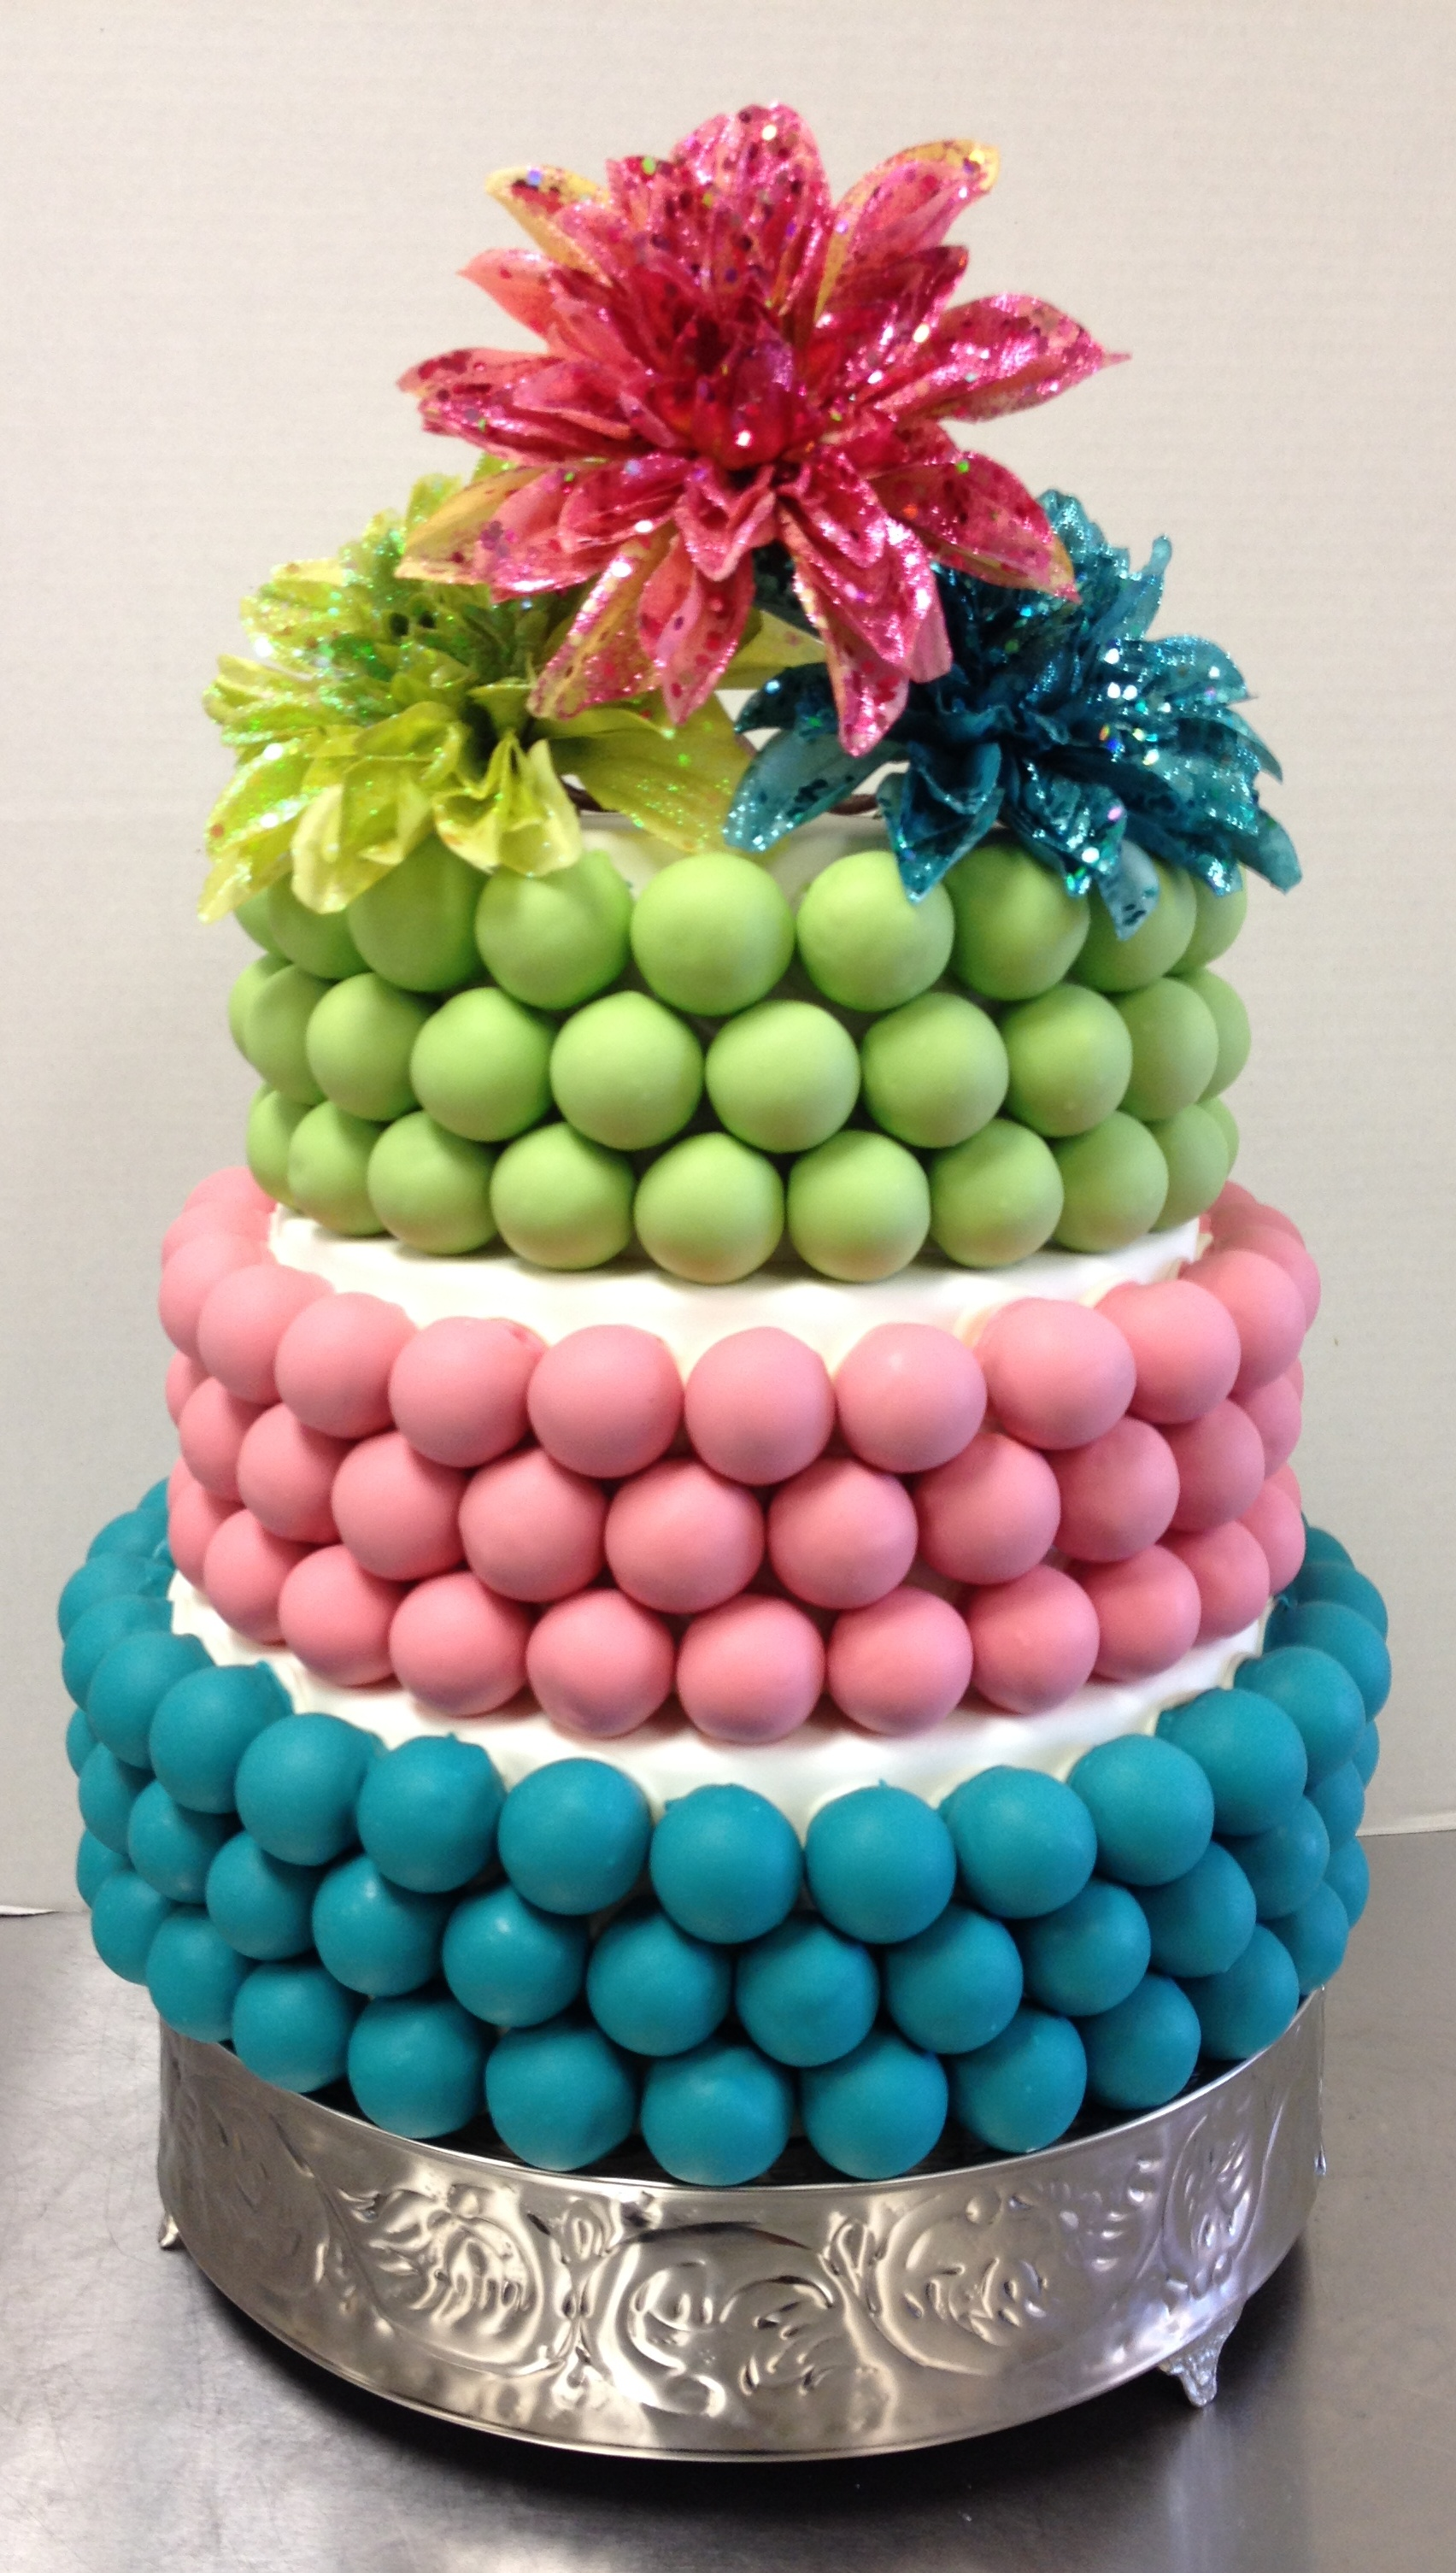 Next Up A Sweet Romantic Wedding Cake This Bite Is The Definition Of Simple Elegance And Romance Love Colors Flowers